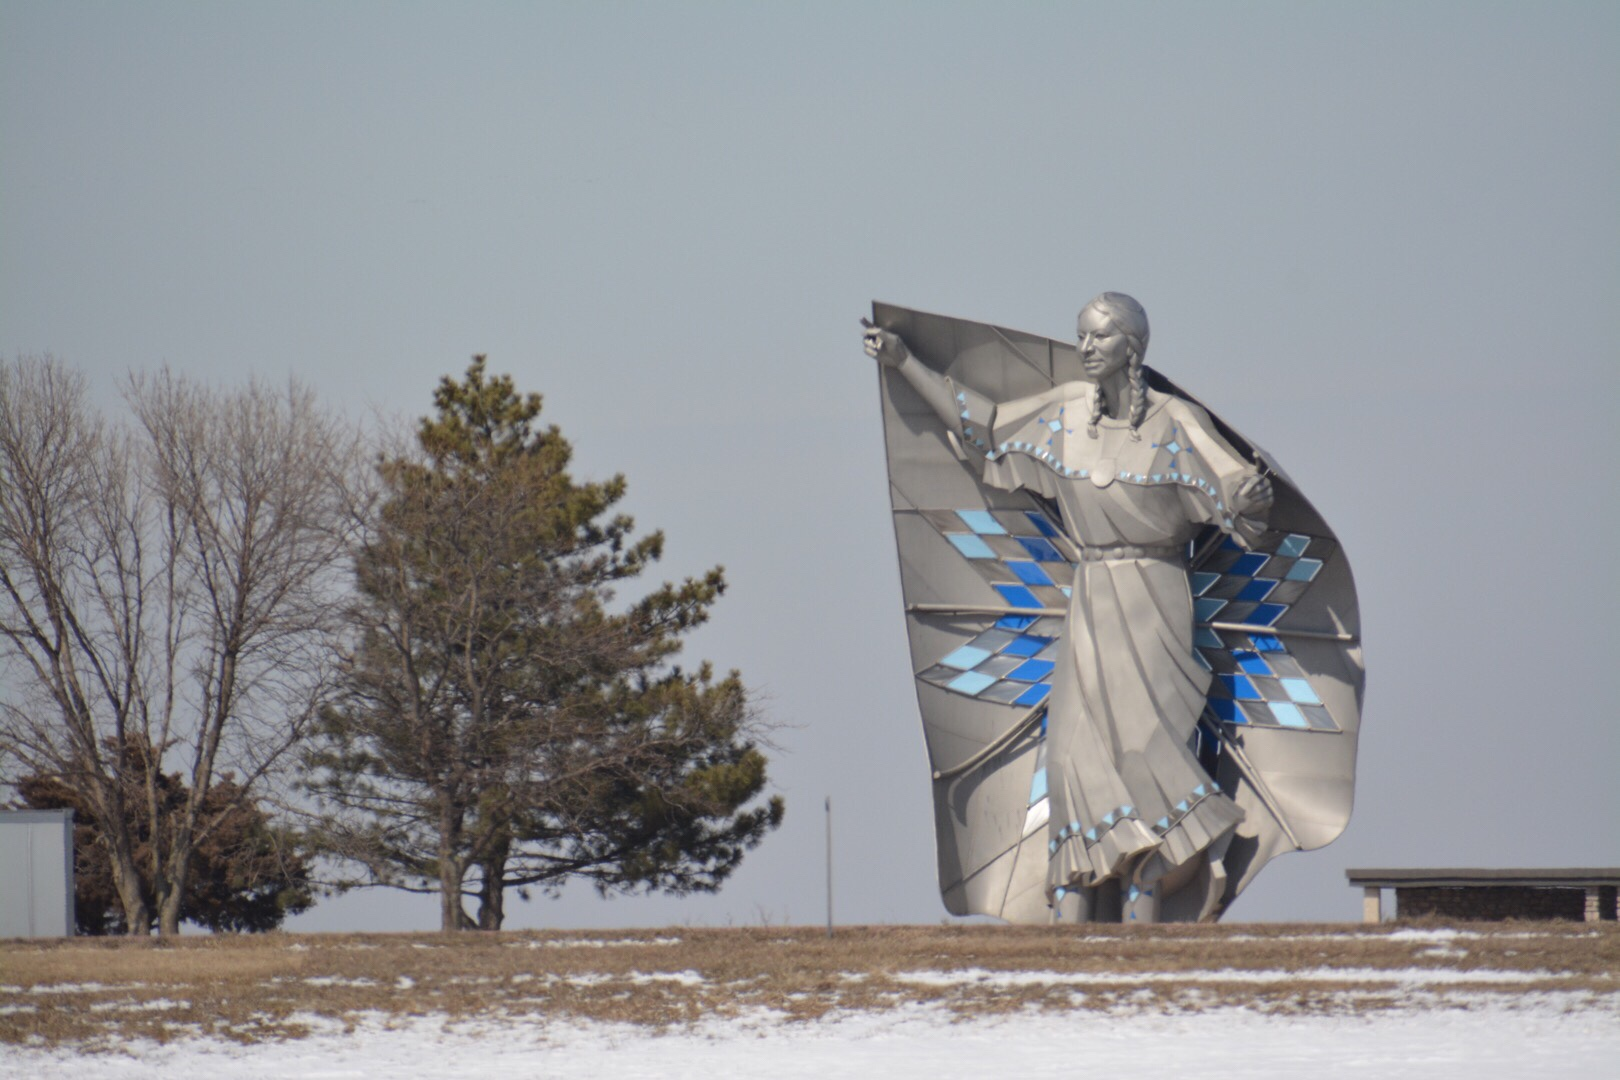 April 2018 Cross-Country Road Trip: Dignity of Earth and Sky Statue in South Dakota